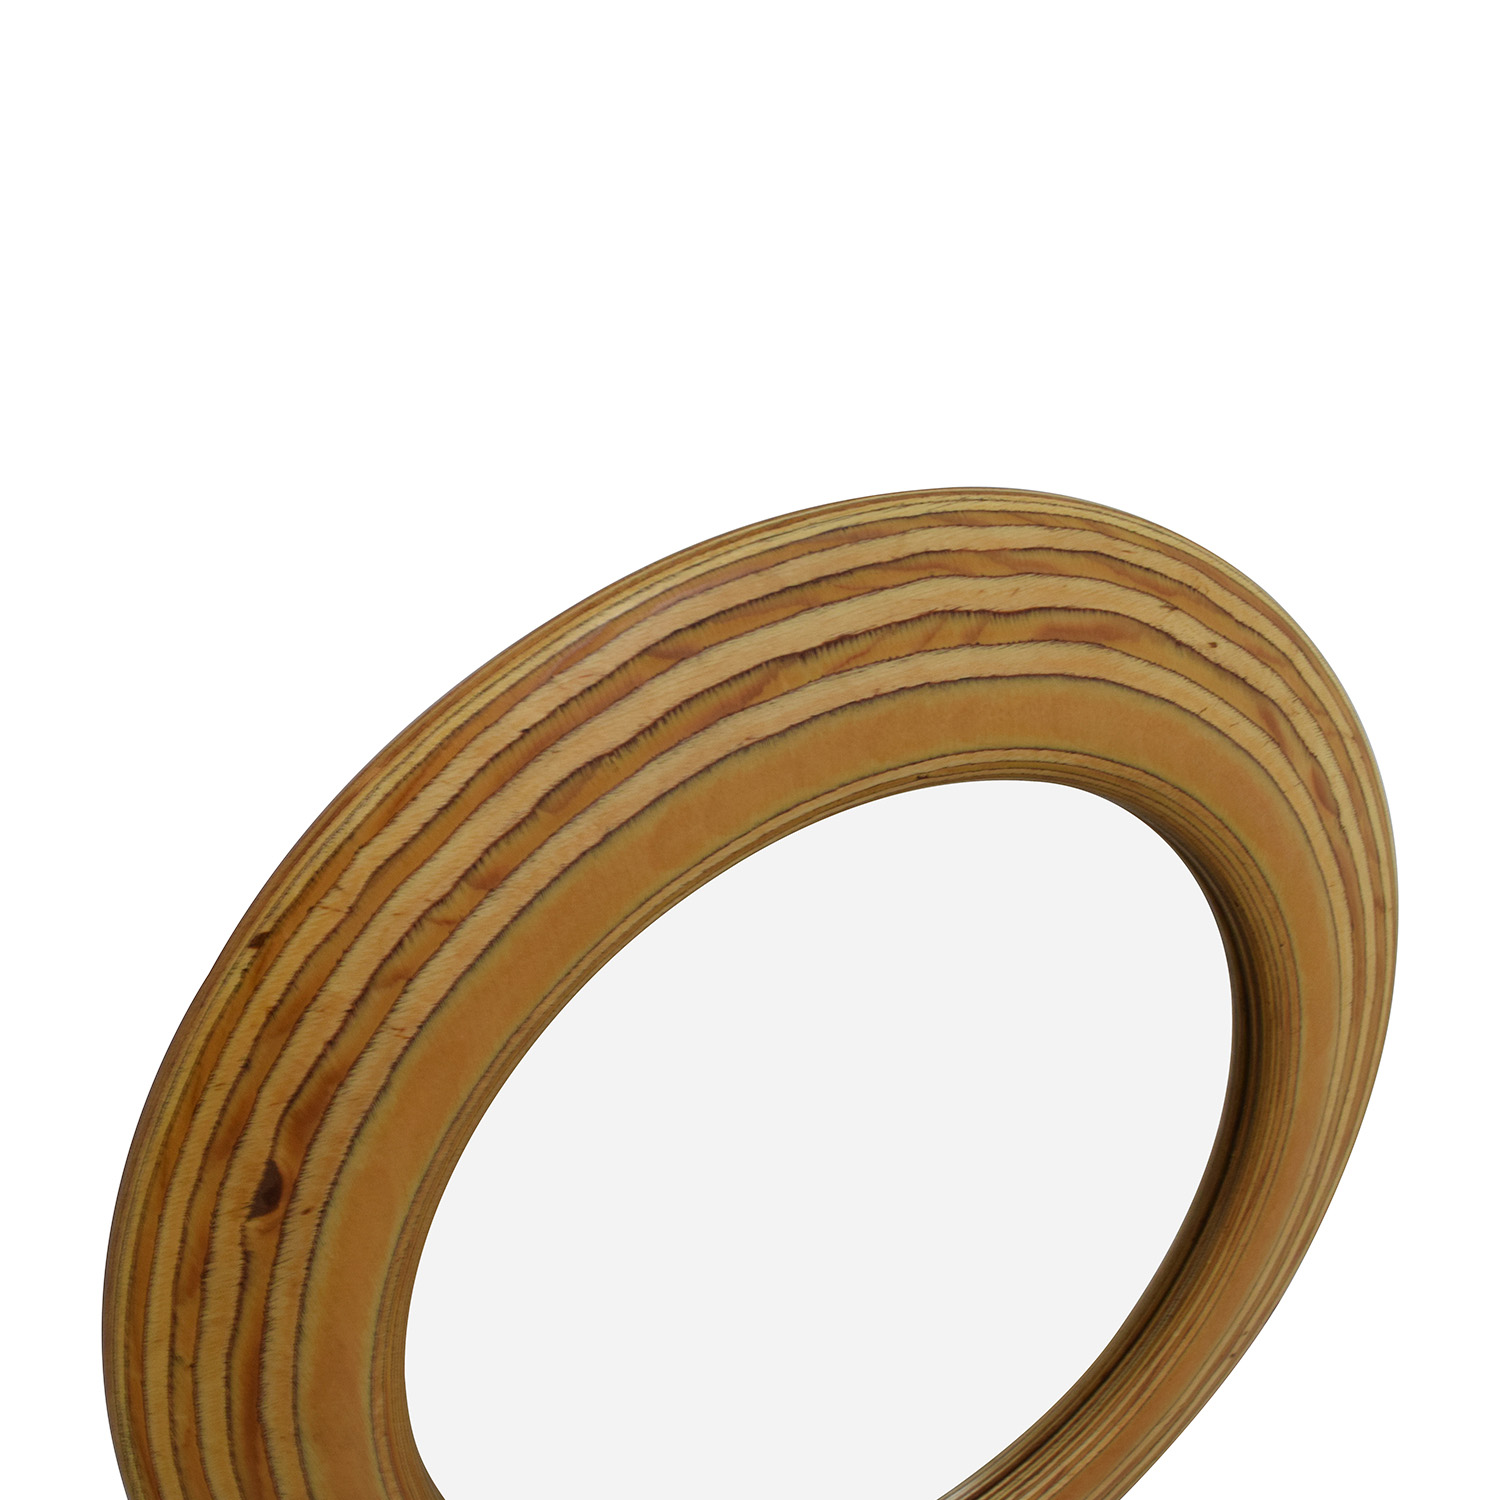 Round Rustic 21 Wooden Mirror brown